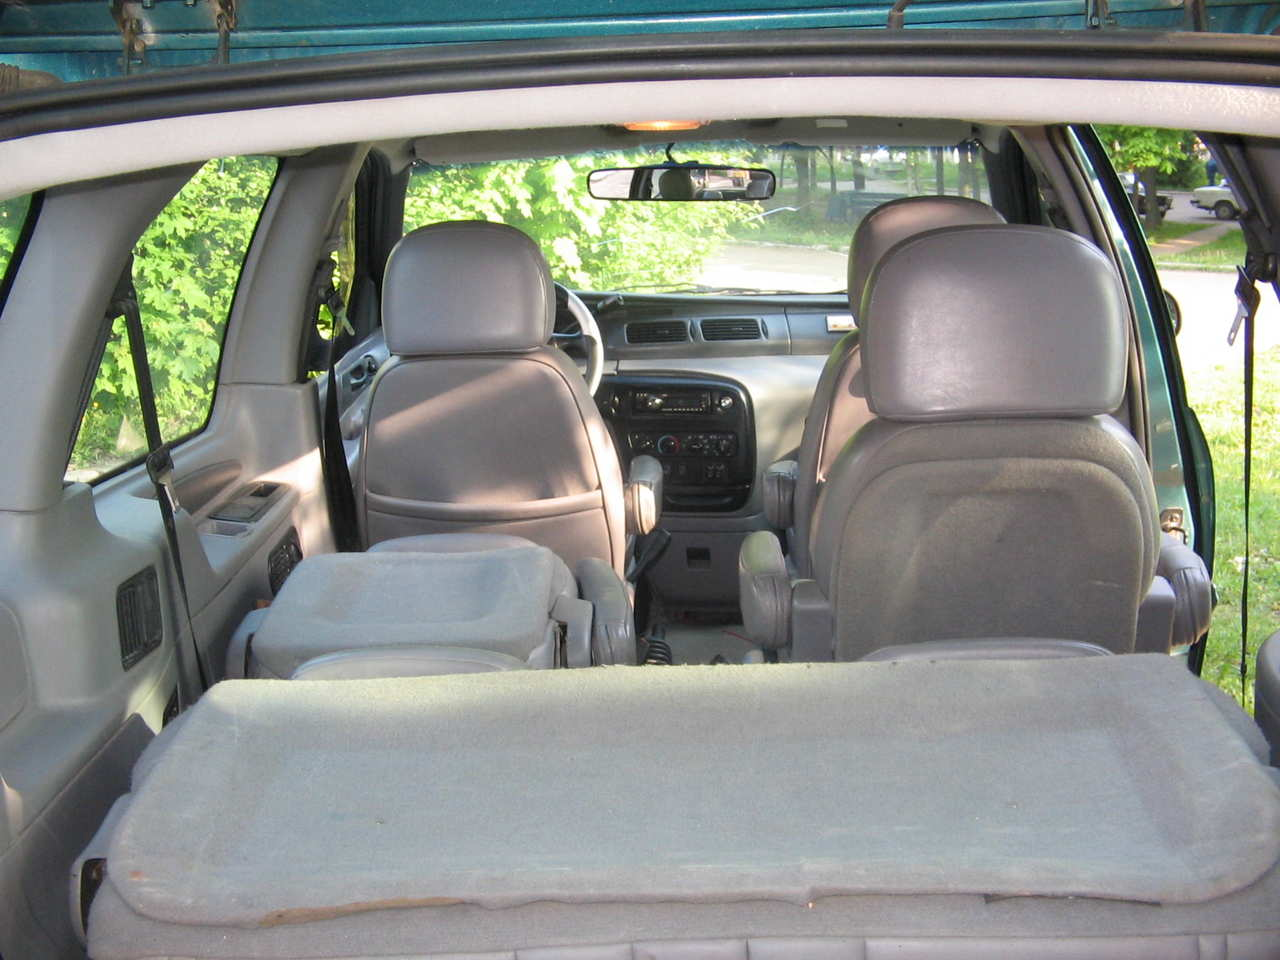 ford windstar (a3) 1997 models #8